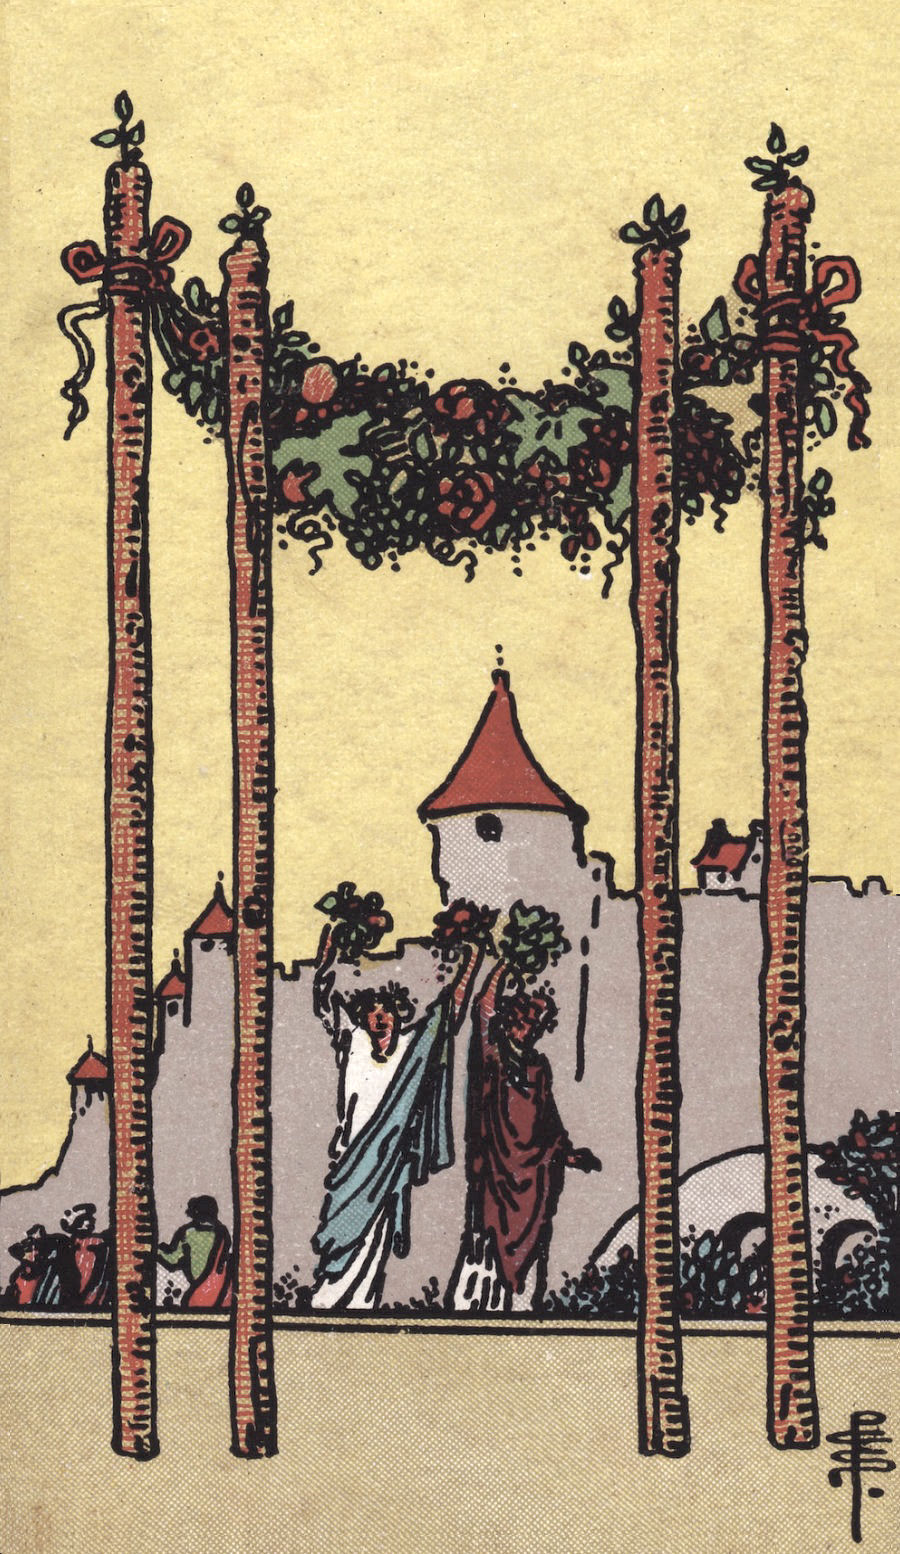 Rider Waite Smith Four of Wands Tarot Card Meaning